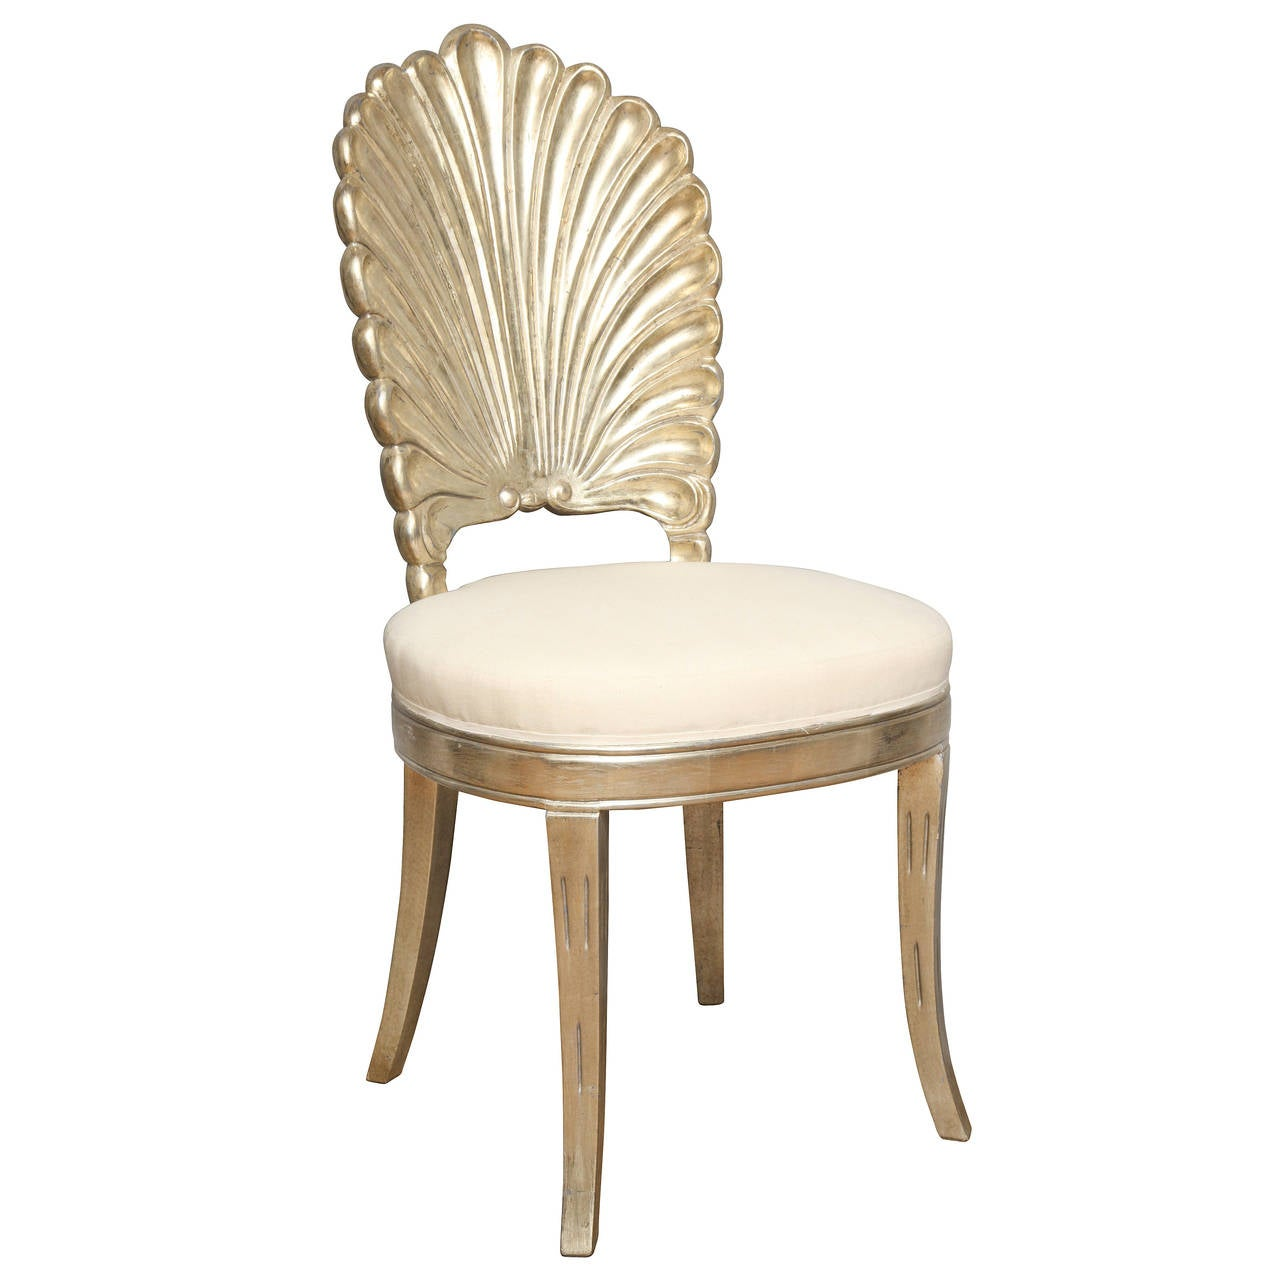 white shell chair texas star rocking an italian back carved and silver leafed for